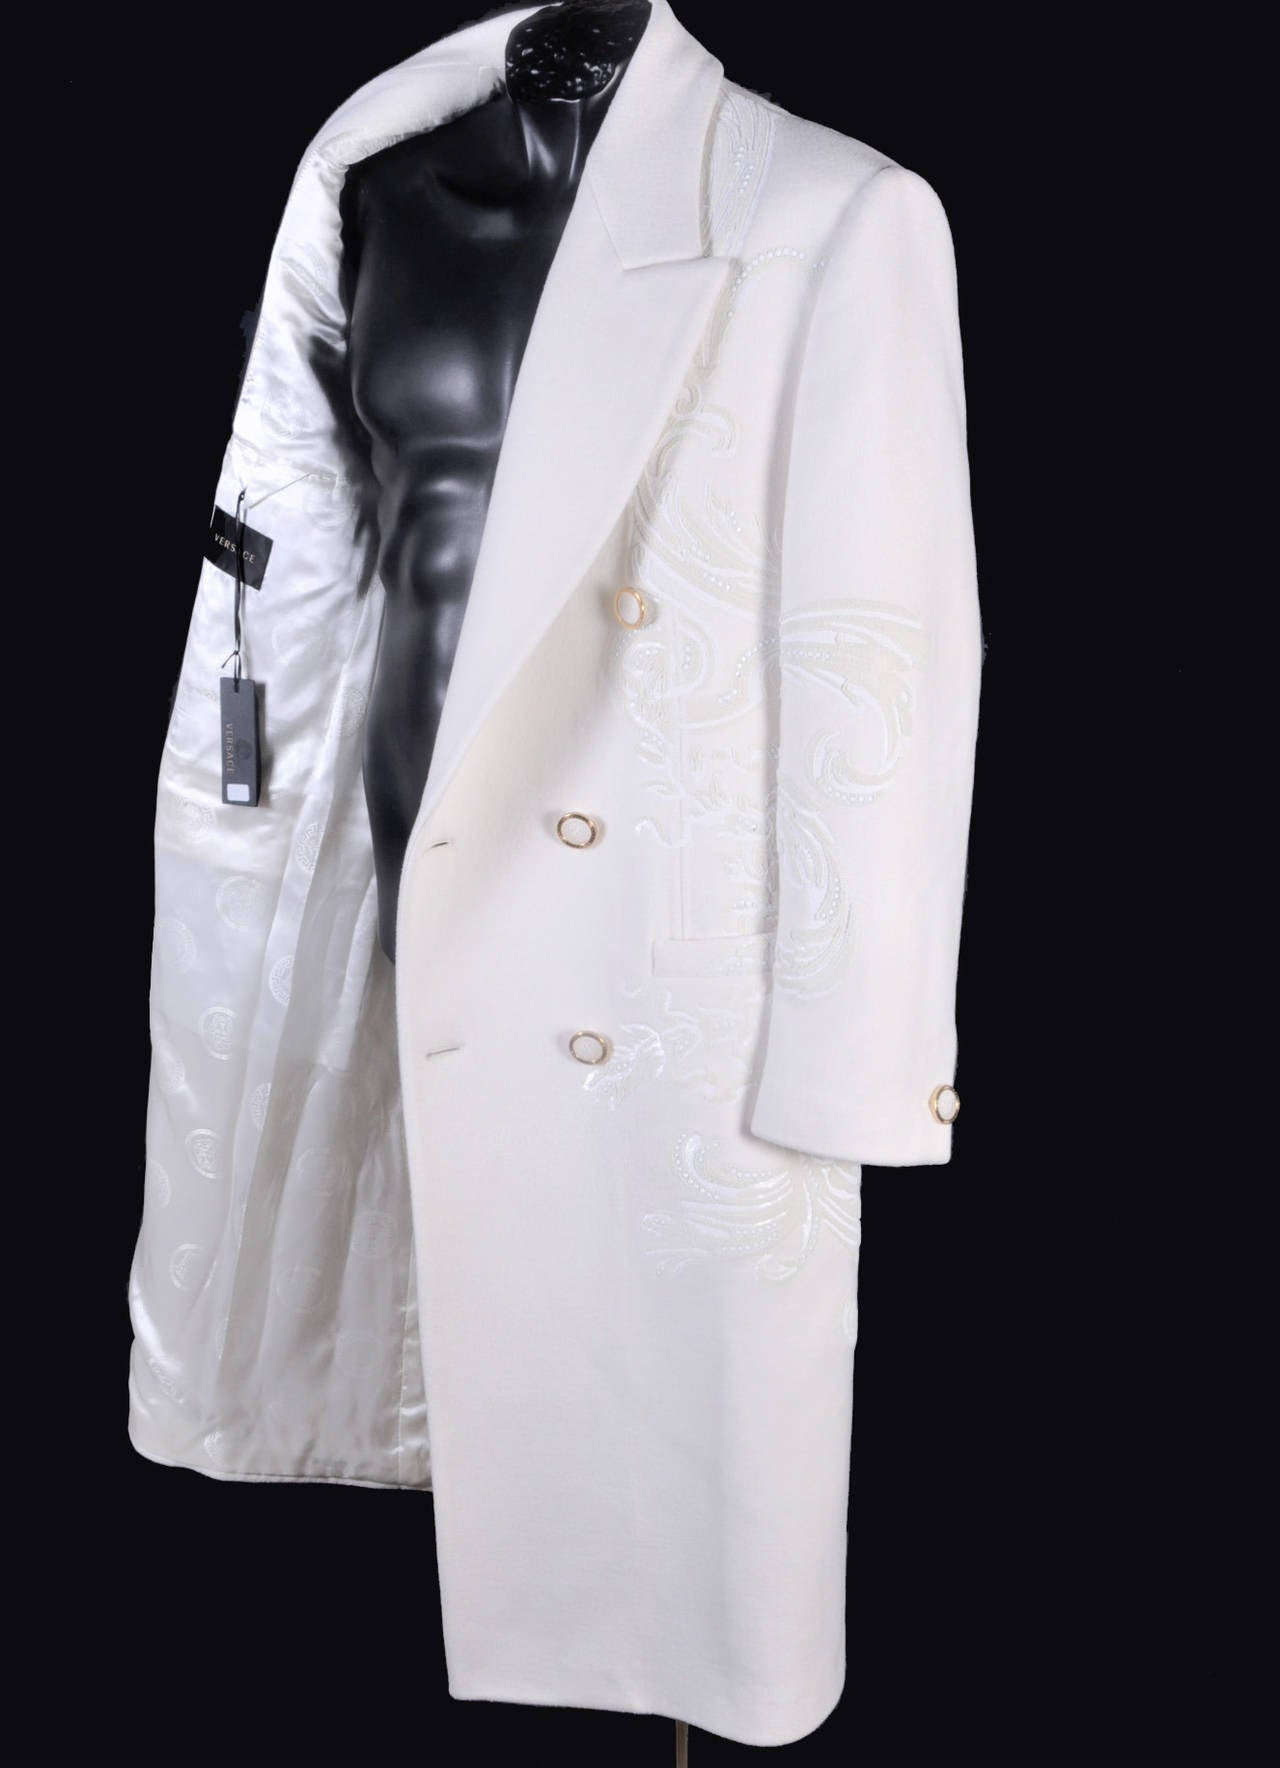 New VERSACE WHITE 100% CASHMERE EMBELLISHED MEN's COAT For Sale 3